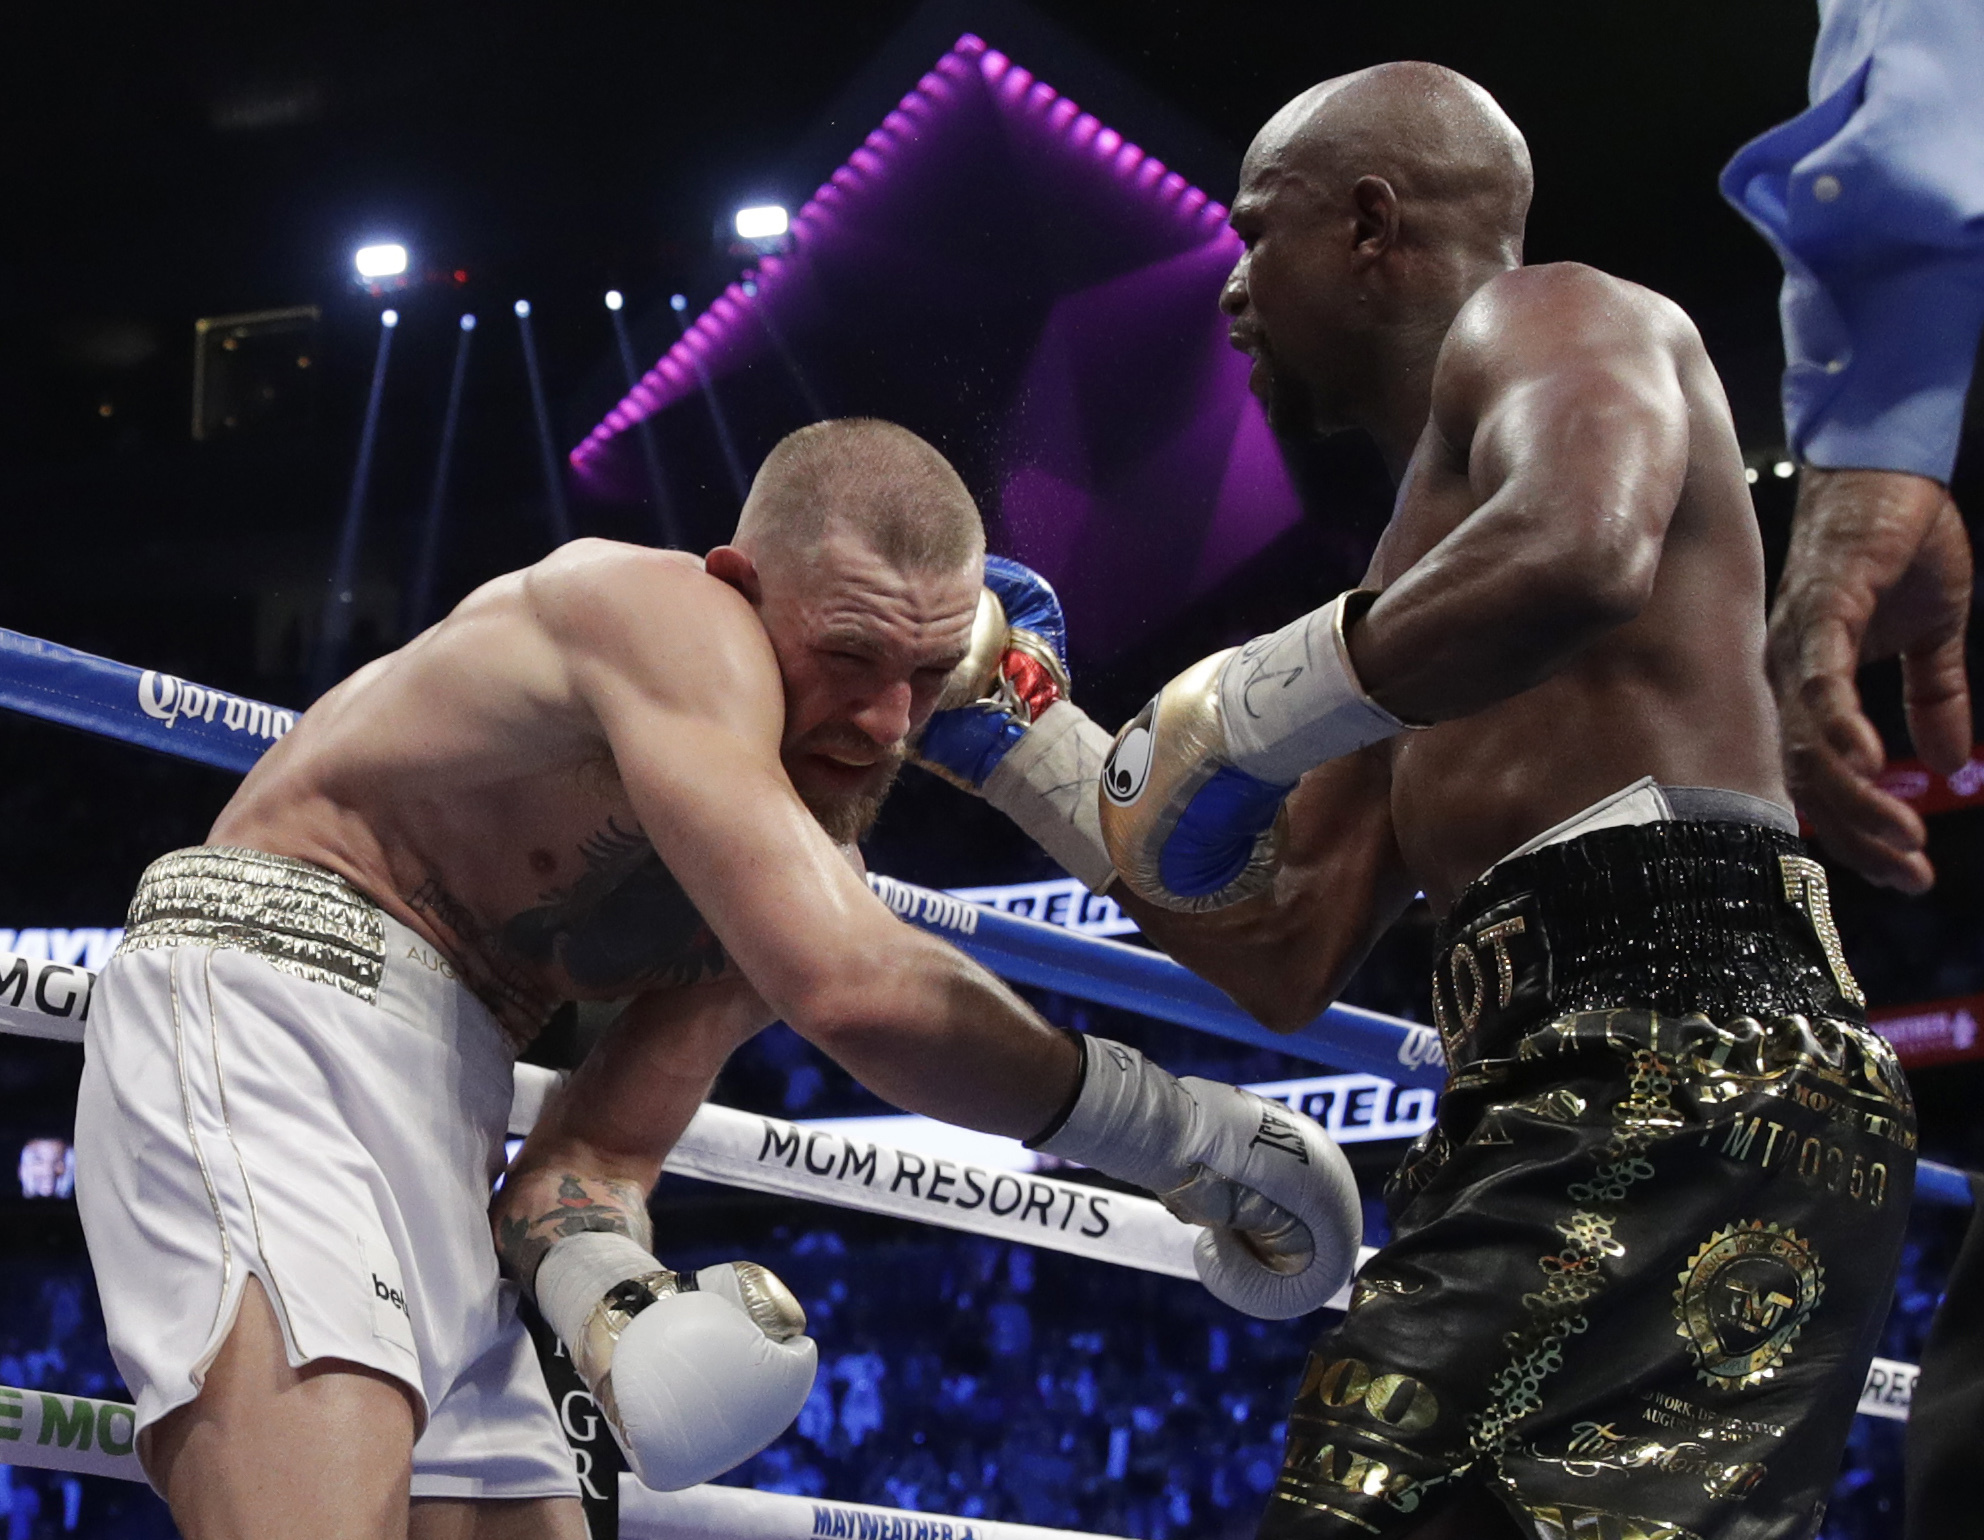 Mayweather refused last-minute prop wagers on fight with McGregor